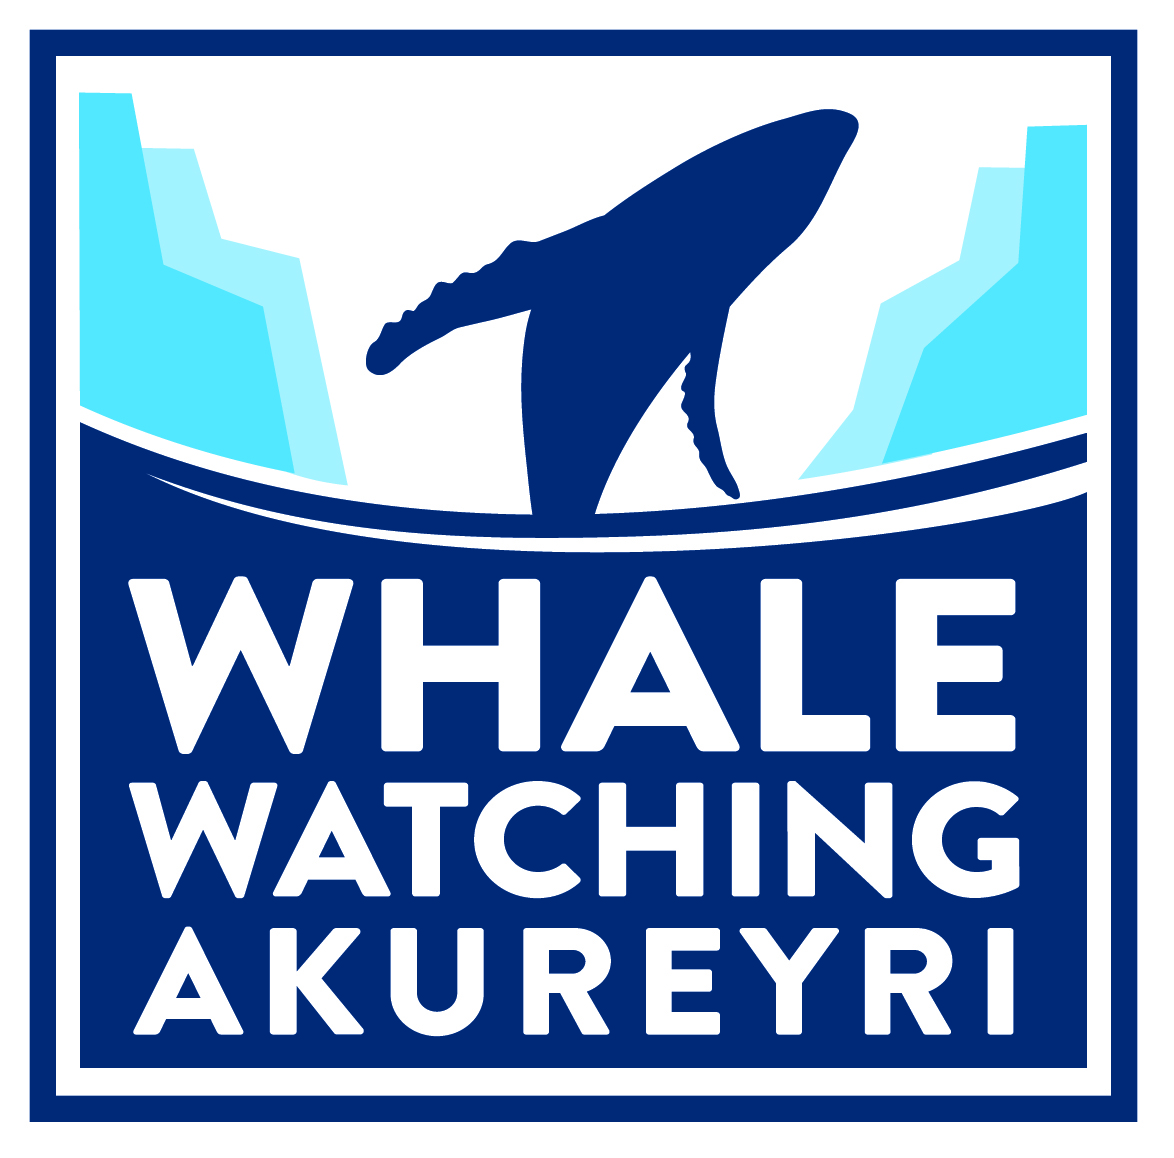 Whale Watching Tours Akureyri